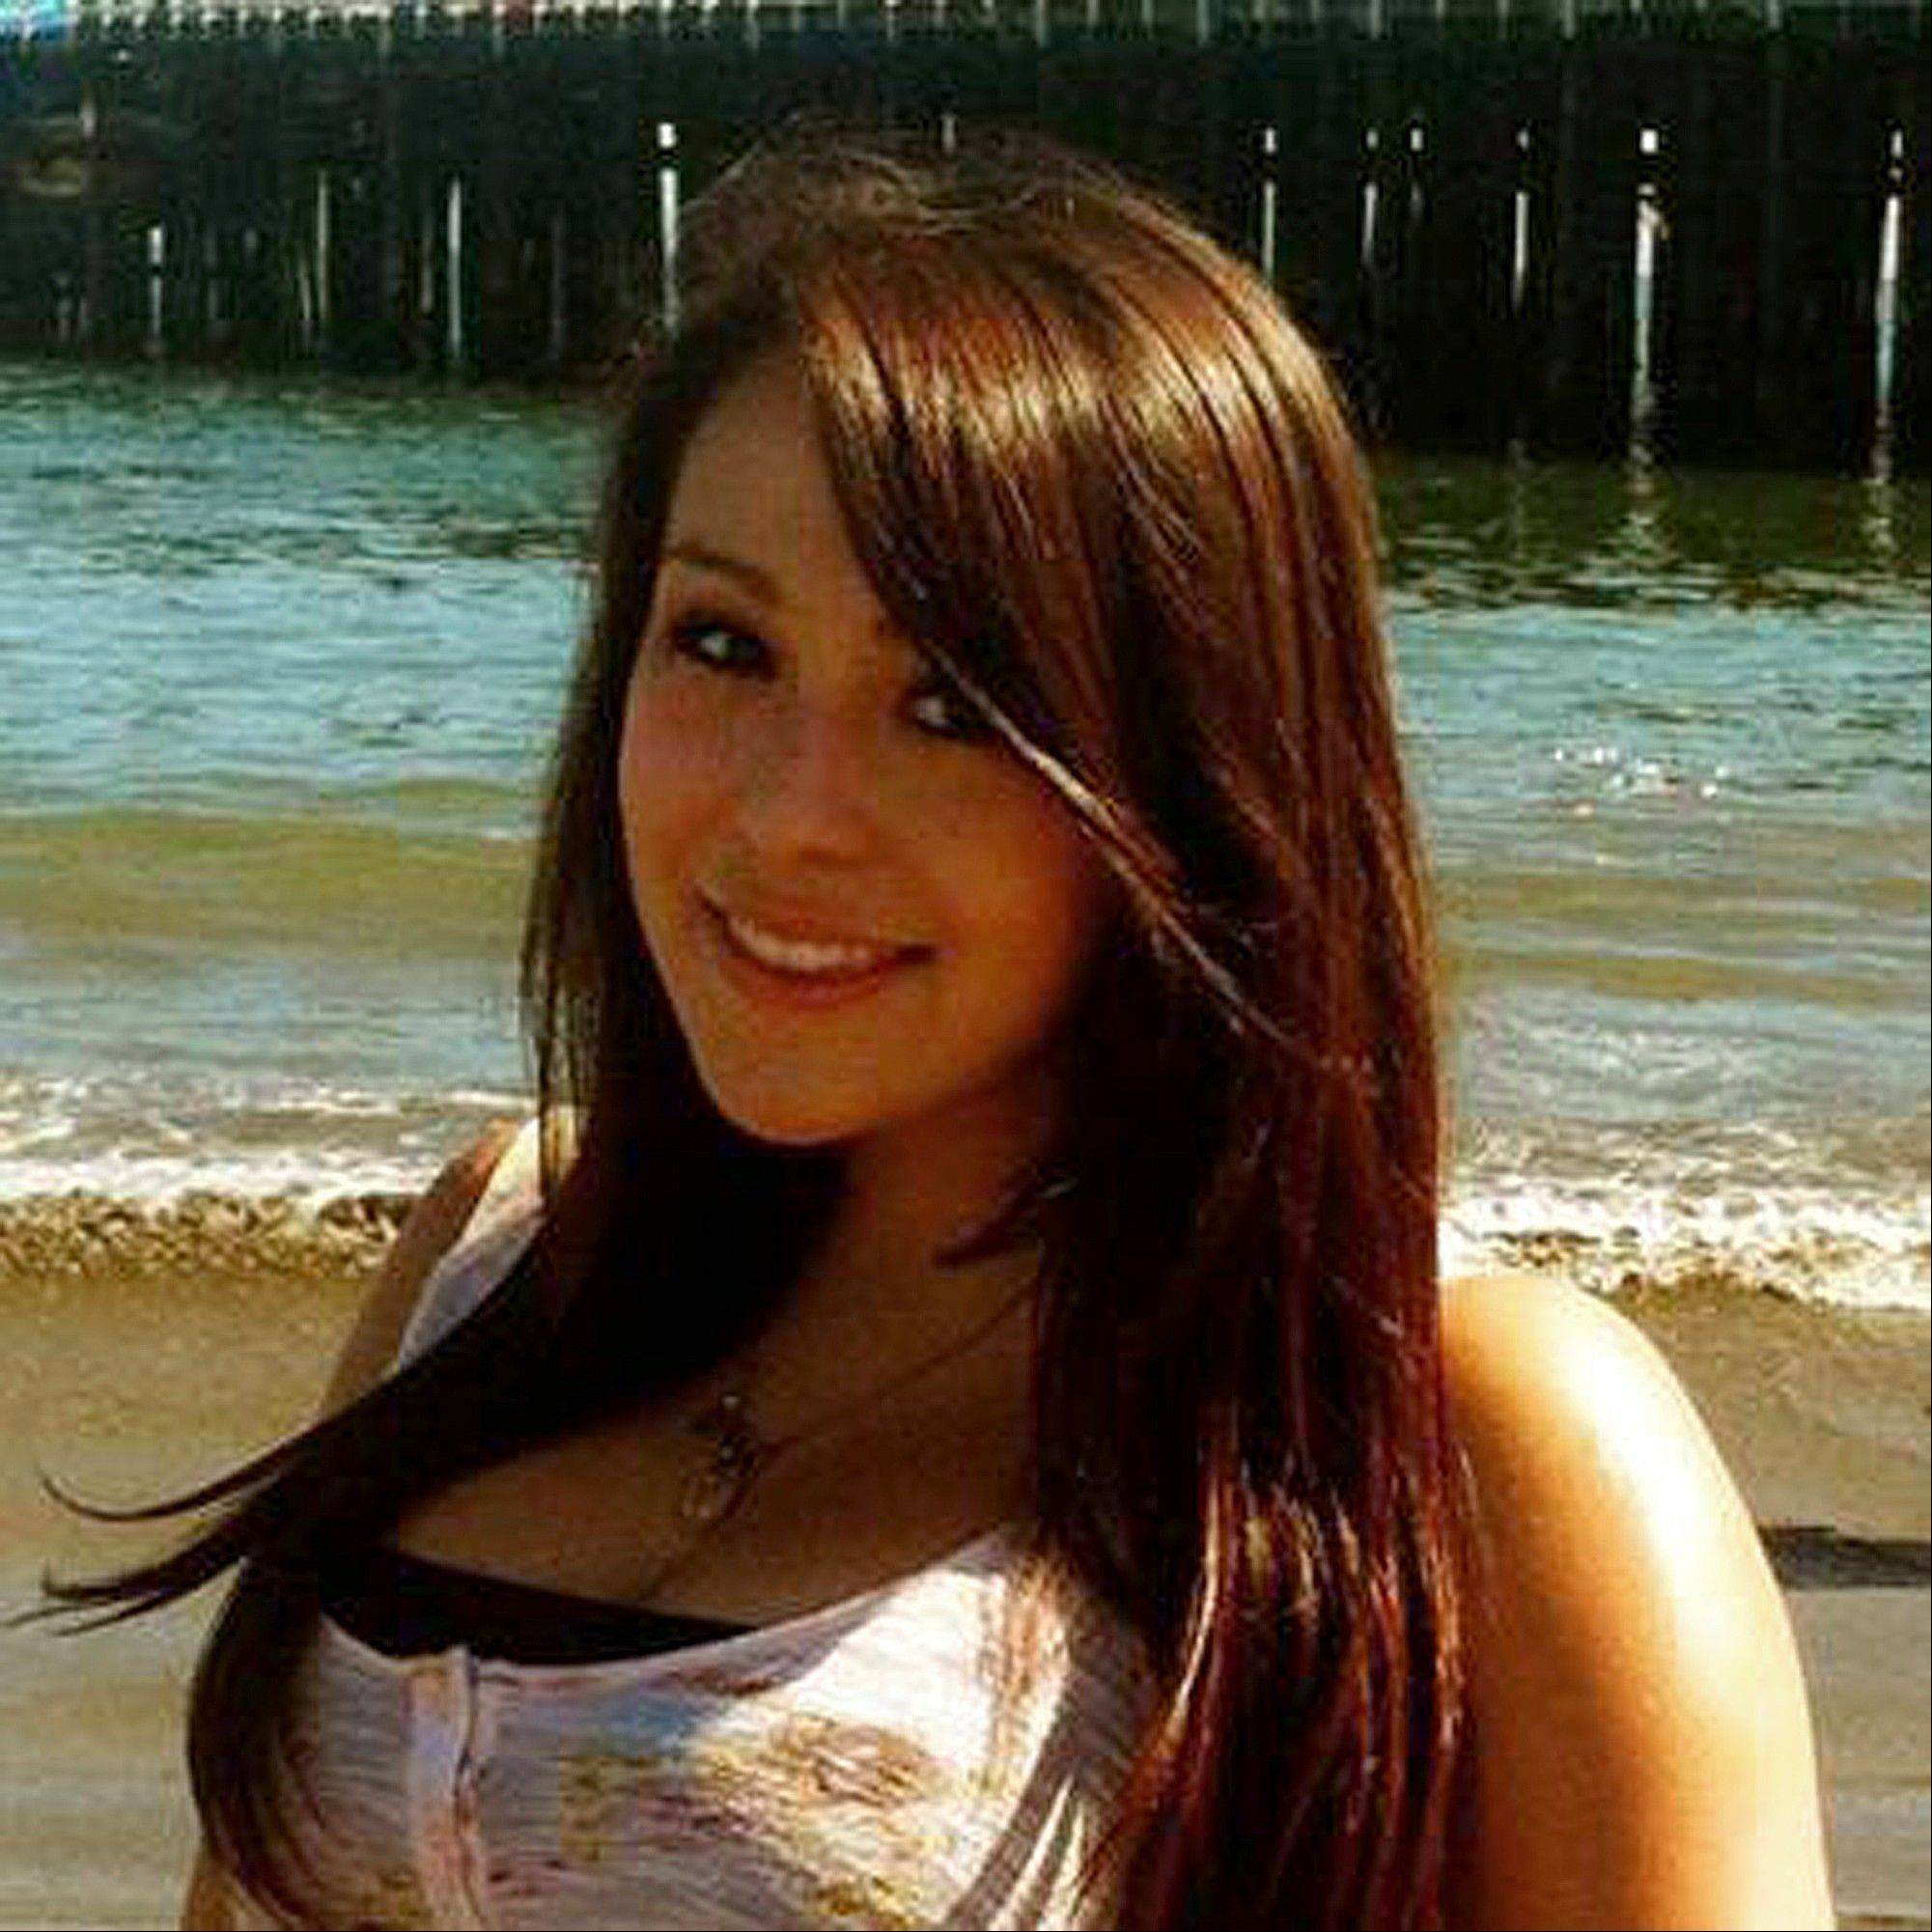 A Northern California sheriff's office has arrested three 16-year-old boys on accusations that they sexually battered 15-year-old Audrie Pott, who hanged herself eight days after the attack last fall. Santa Clara County Sheriff's spokesman Lt. Jose Cardoza says the teens were arrested Thursday.